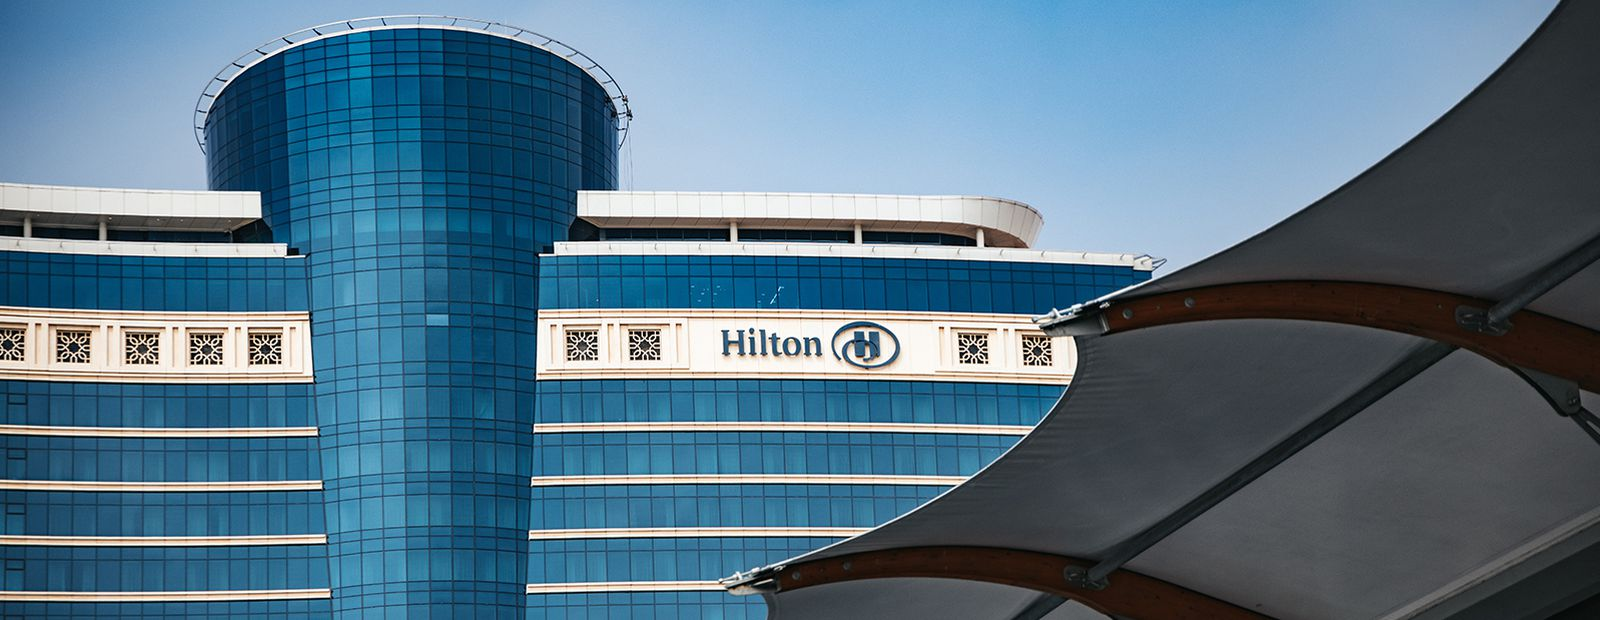 Make new memories with a two-night stay at a Hilton Hotel